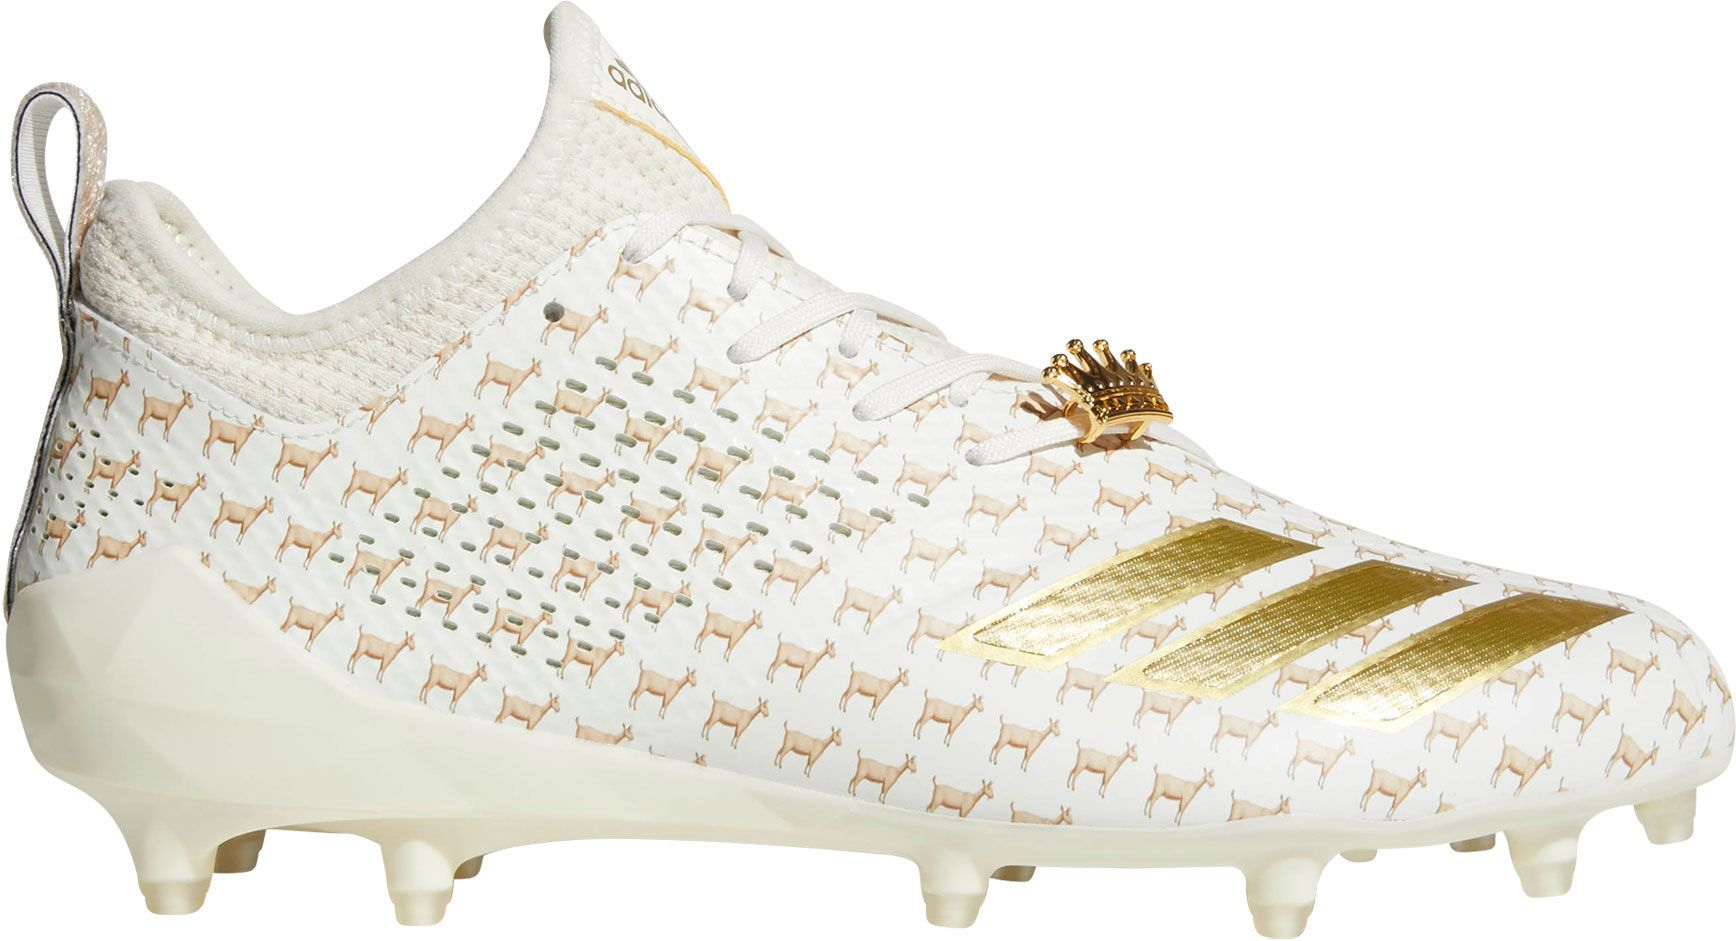 All White Adidas Football Cleats Online Shopping For Women Men Kids Fashion Lifestyle Free Delivery Returns